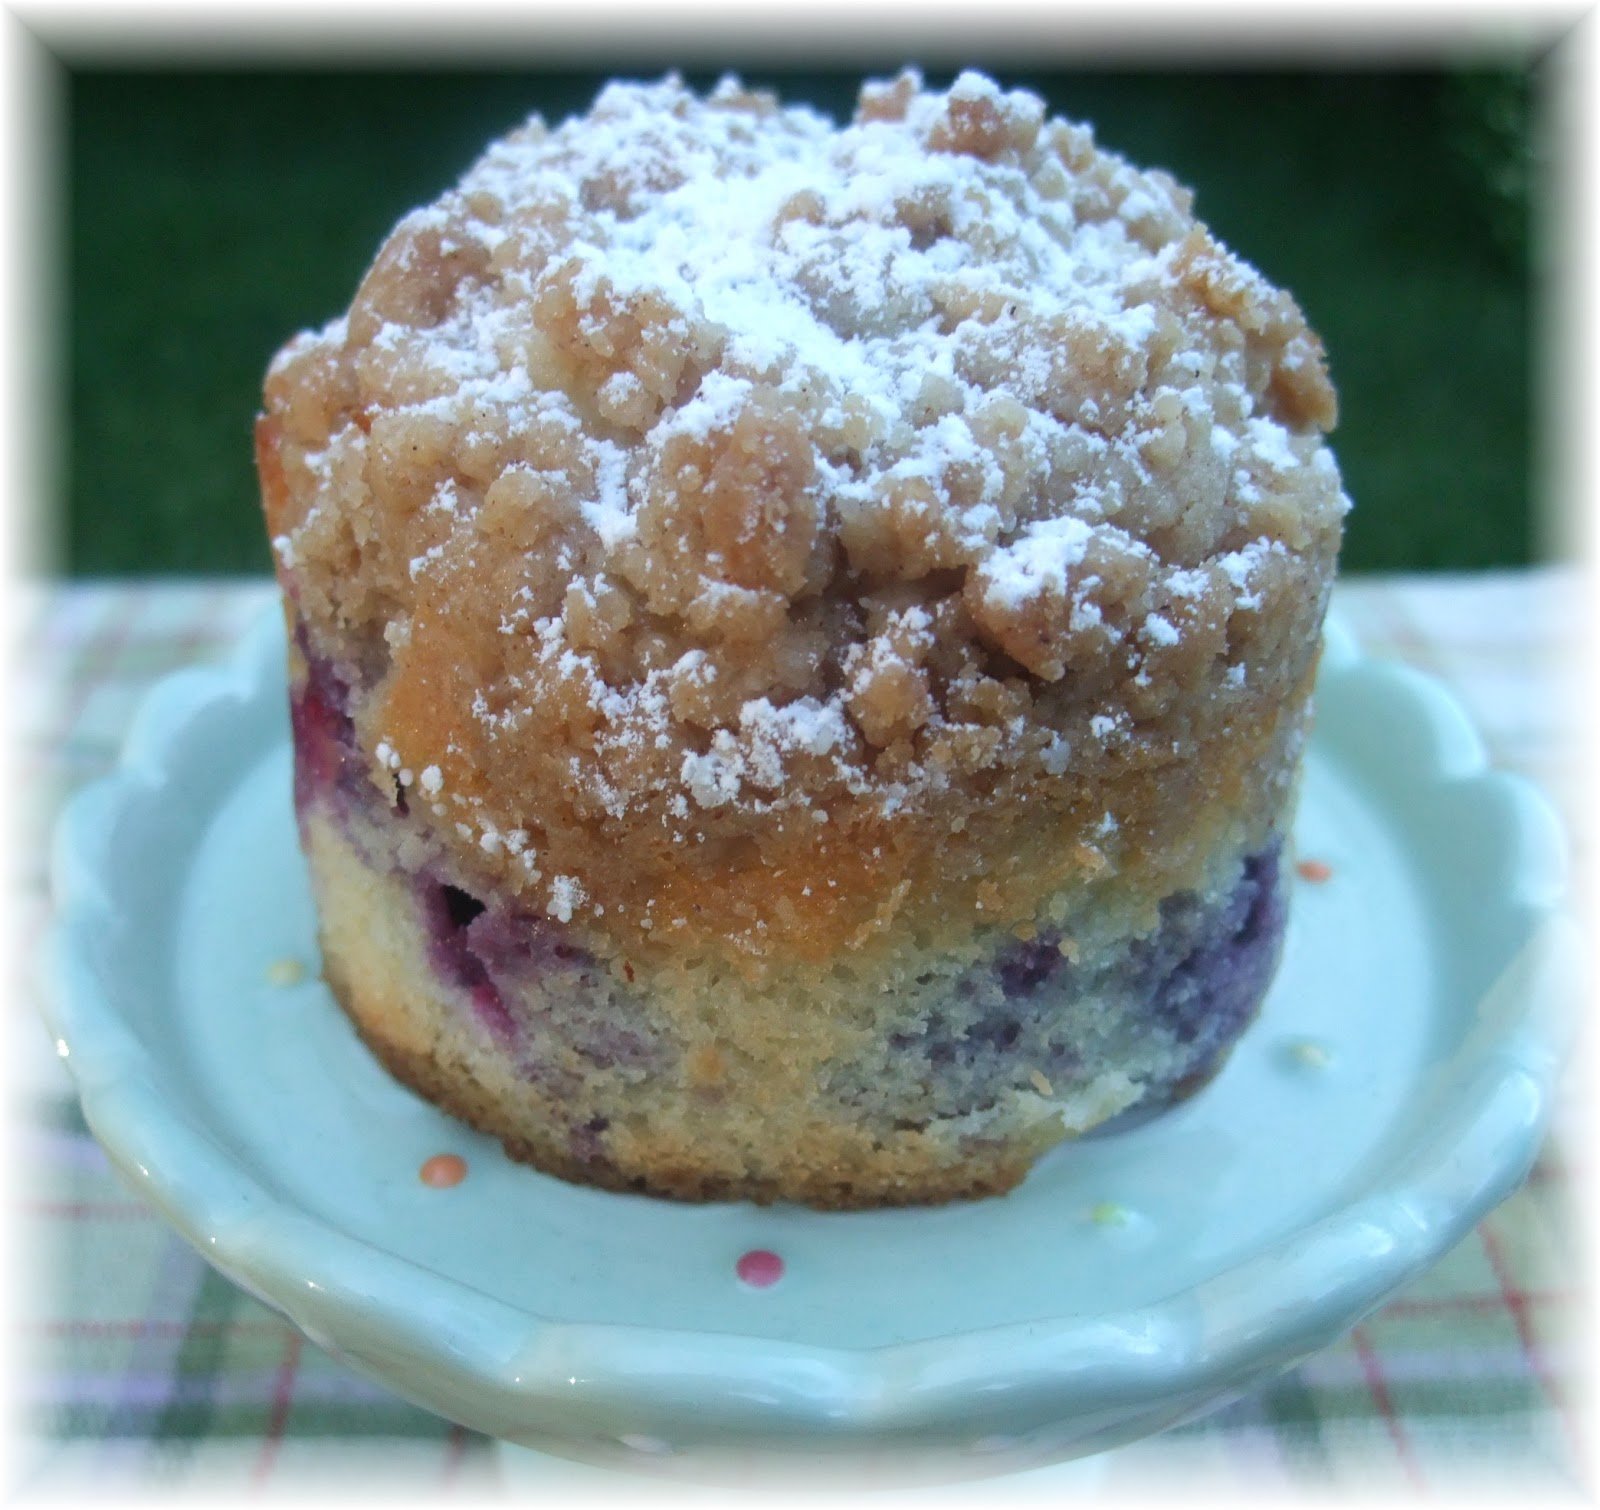 Rosie's Country Baking: Blueberry Crumb Cake